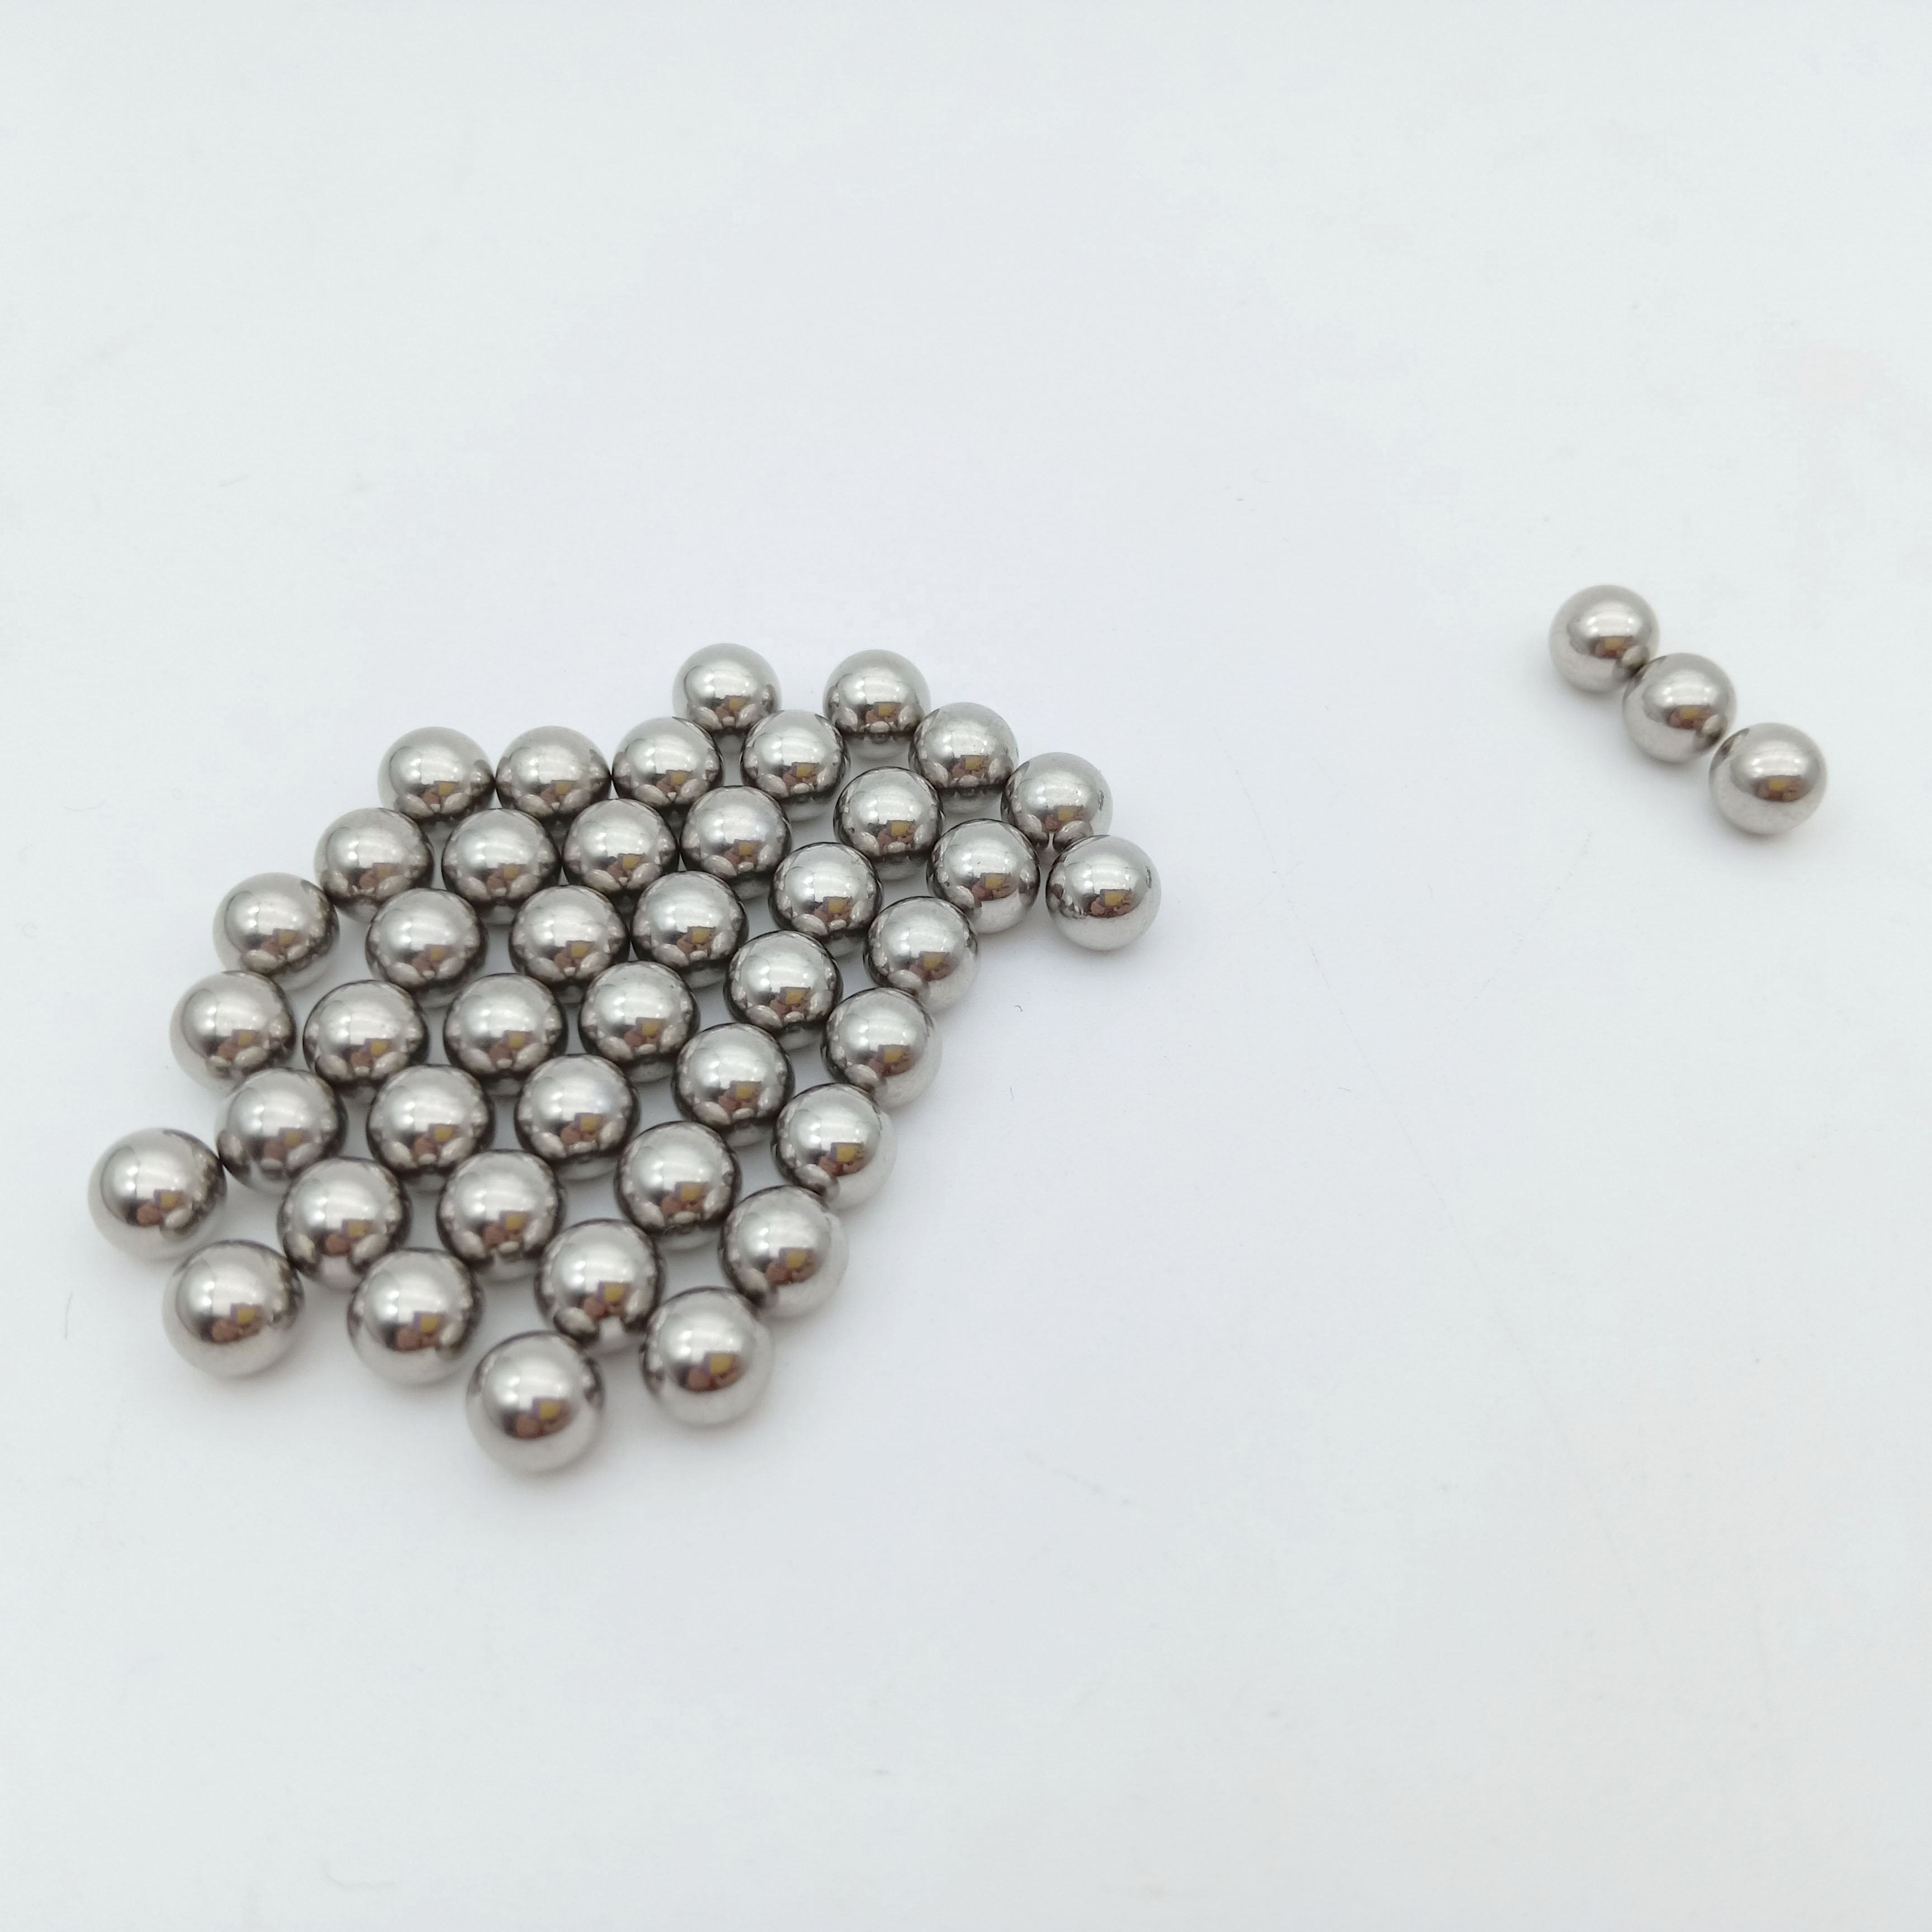 2mm 6mm 12mm 17mm 19mm 20mm 6061 Micro Solid Aluminum Ball